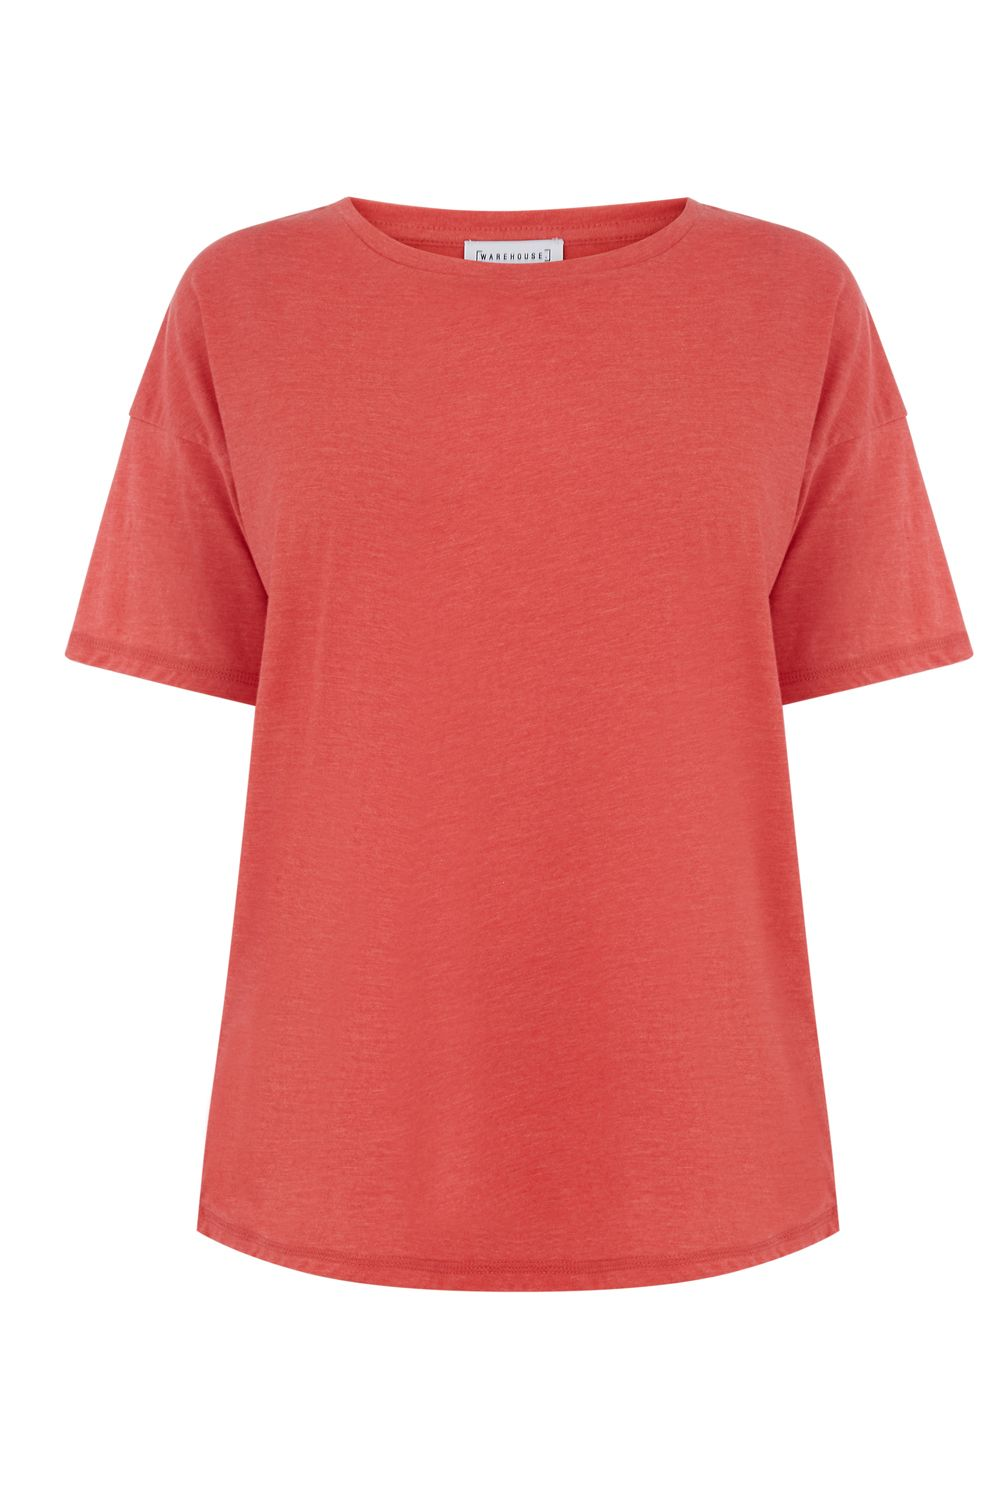 Warehouse Casual Tee, Red